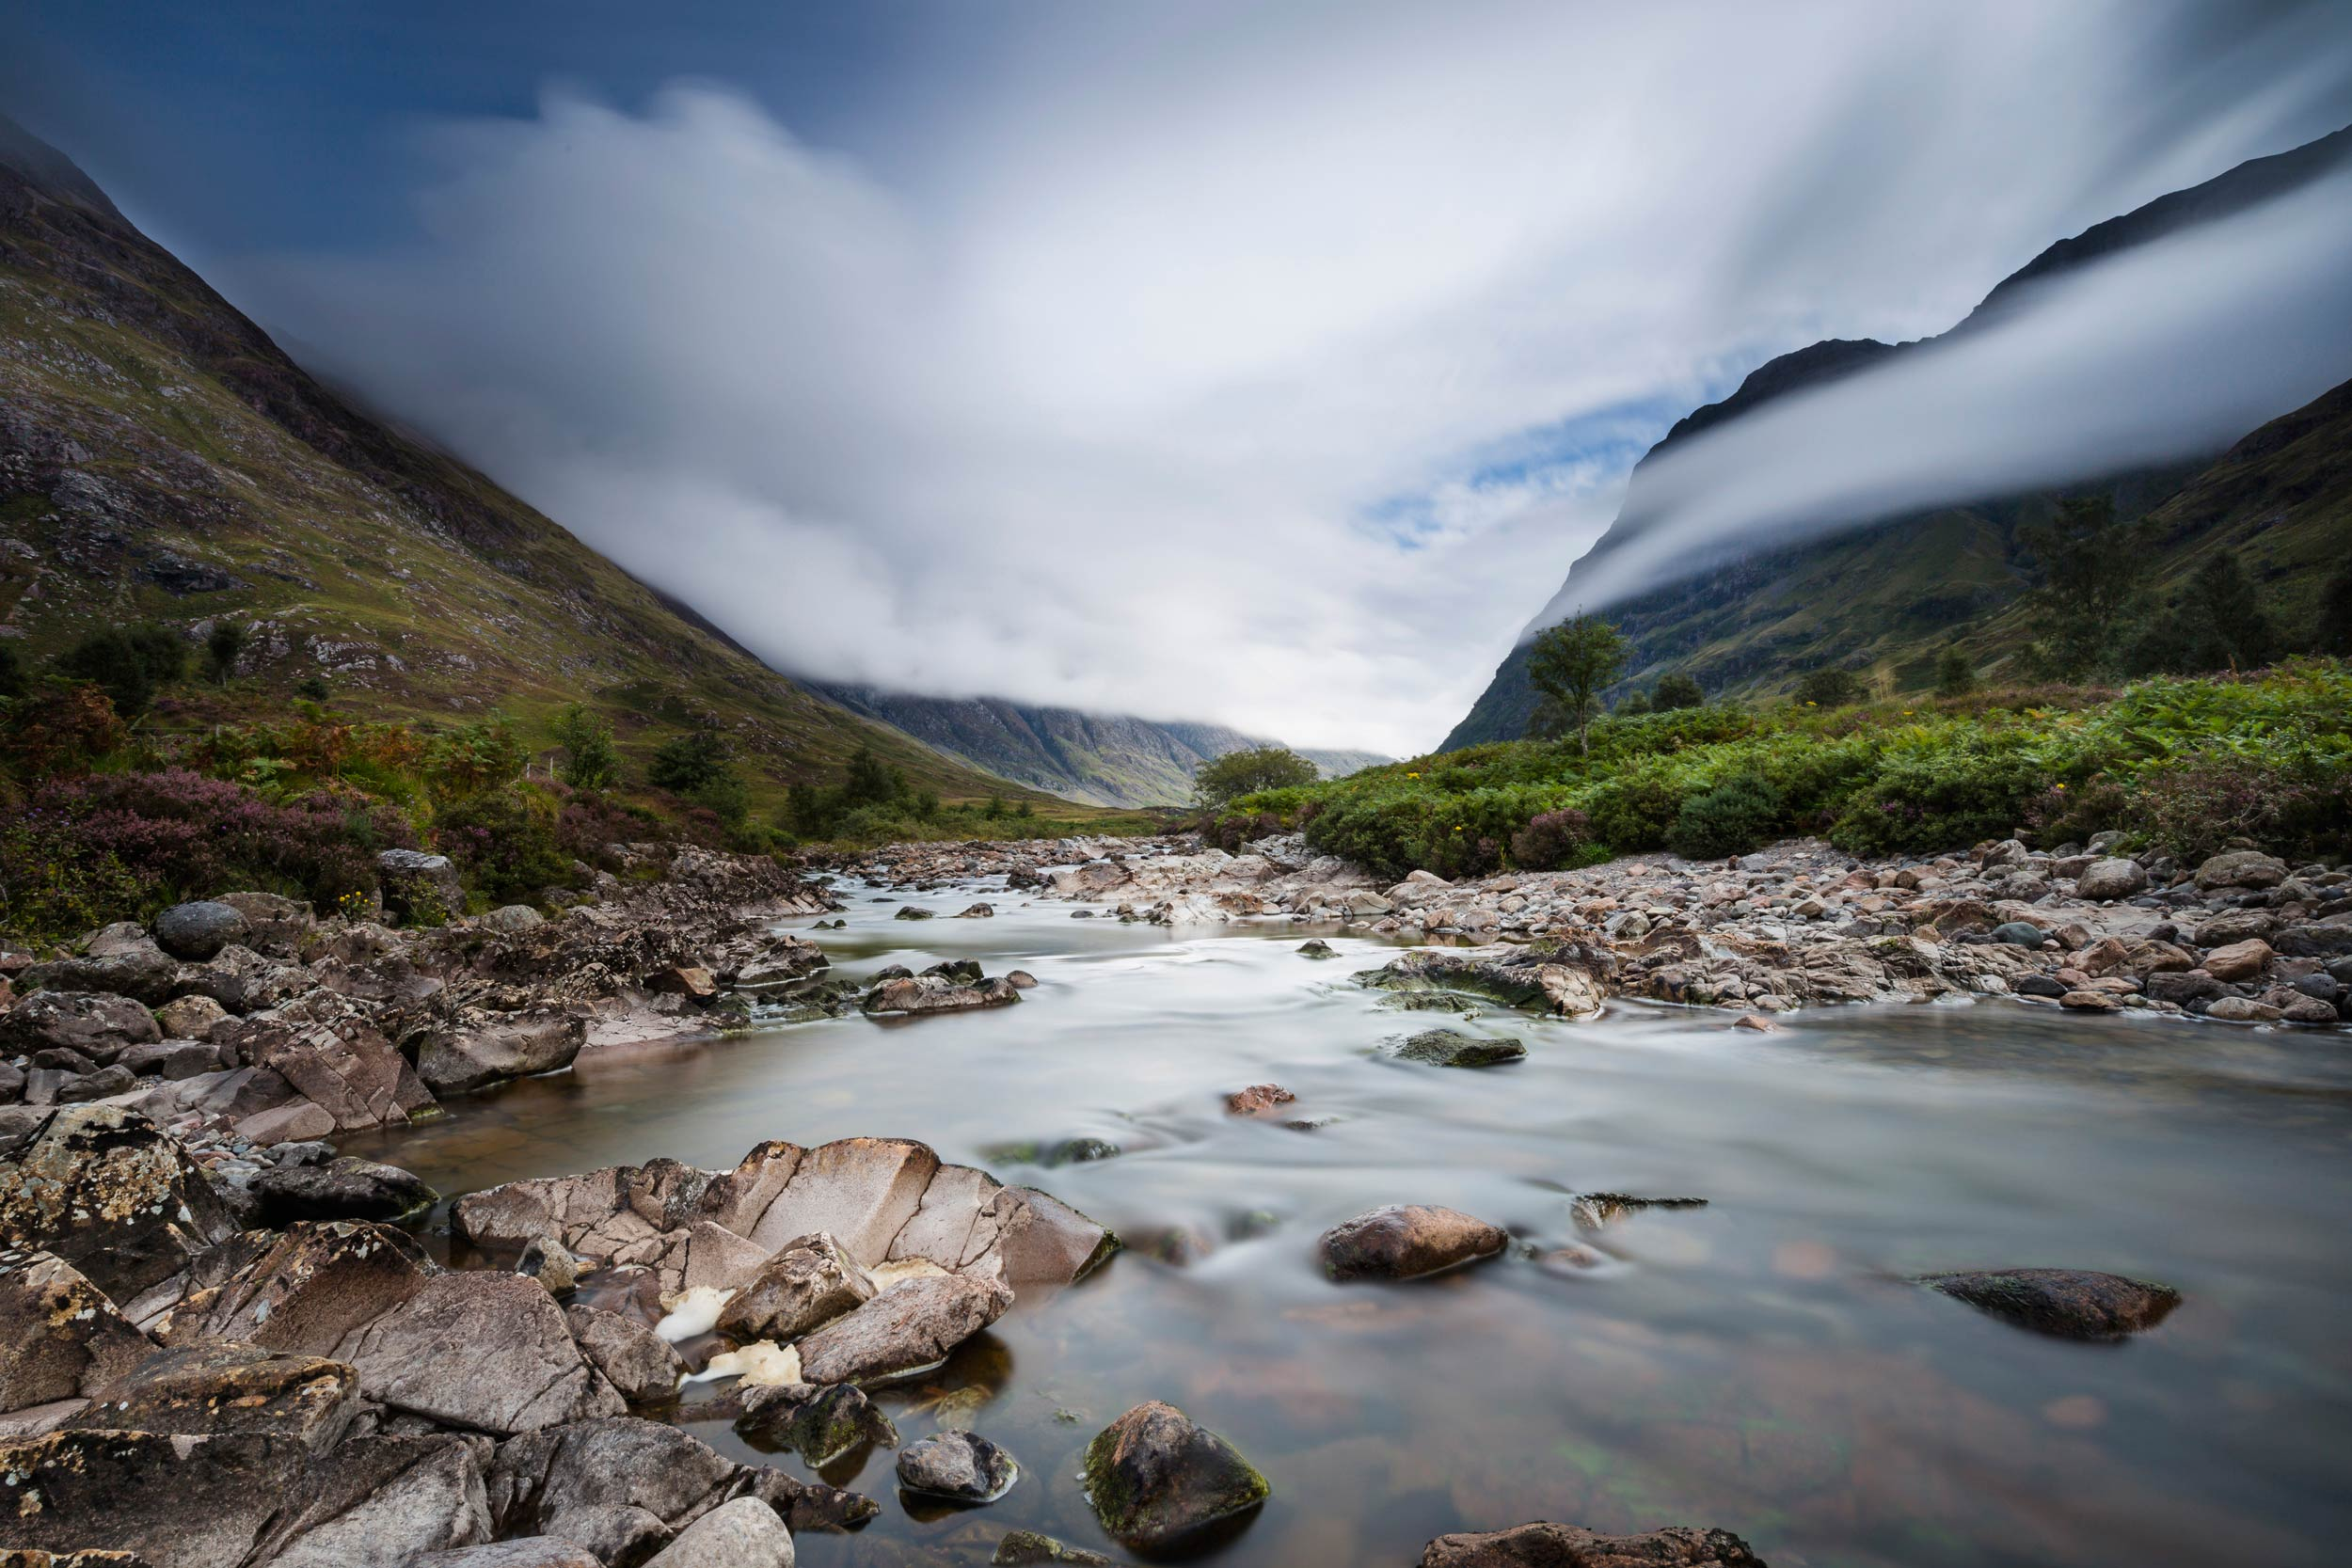 The River Coe by Signal Rock and An Torr  (VisitScotland)